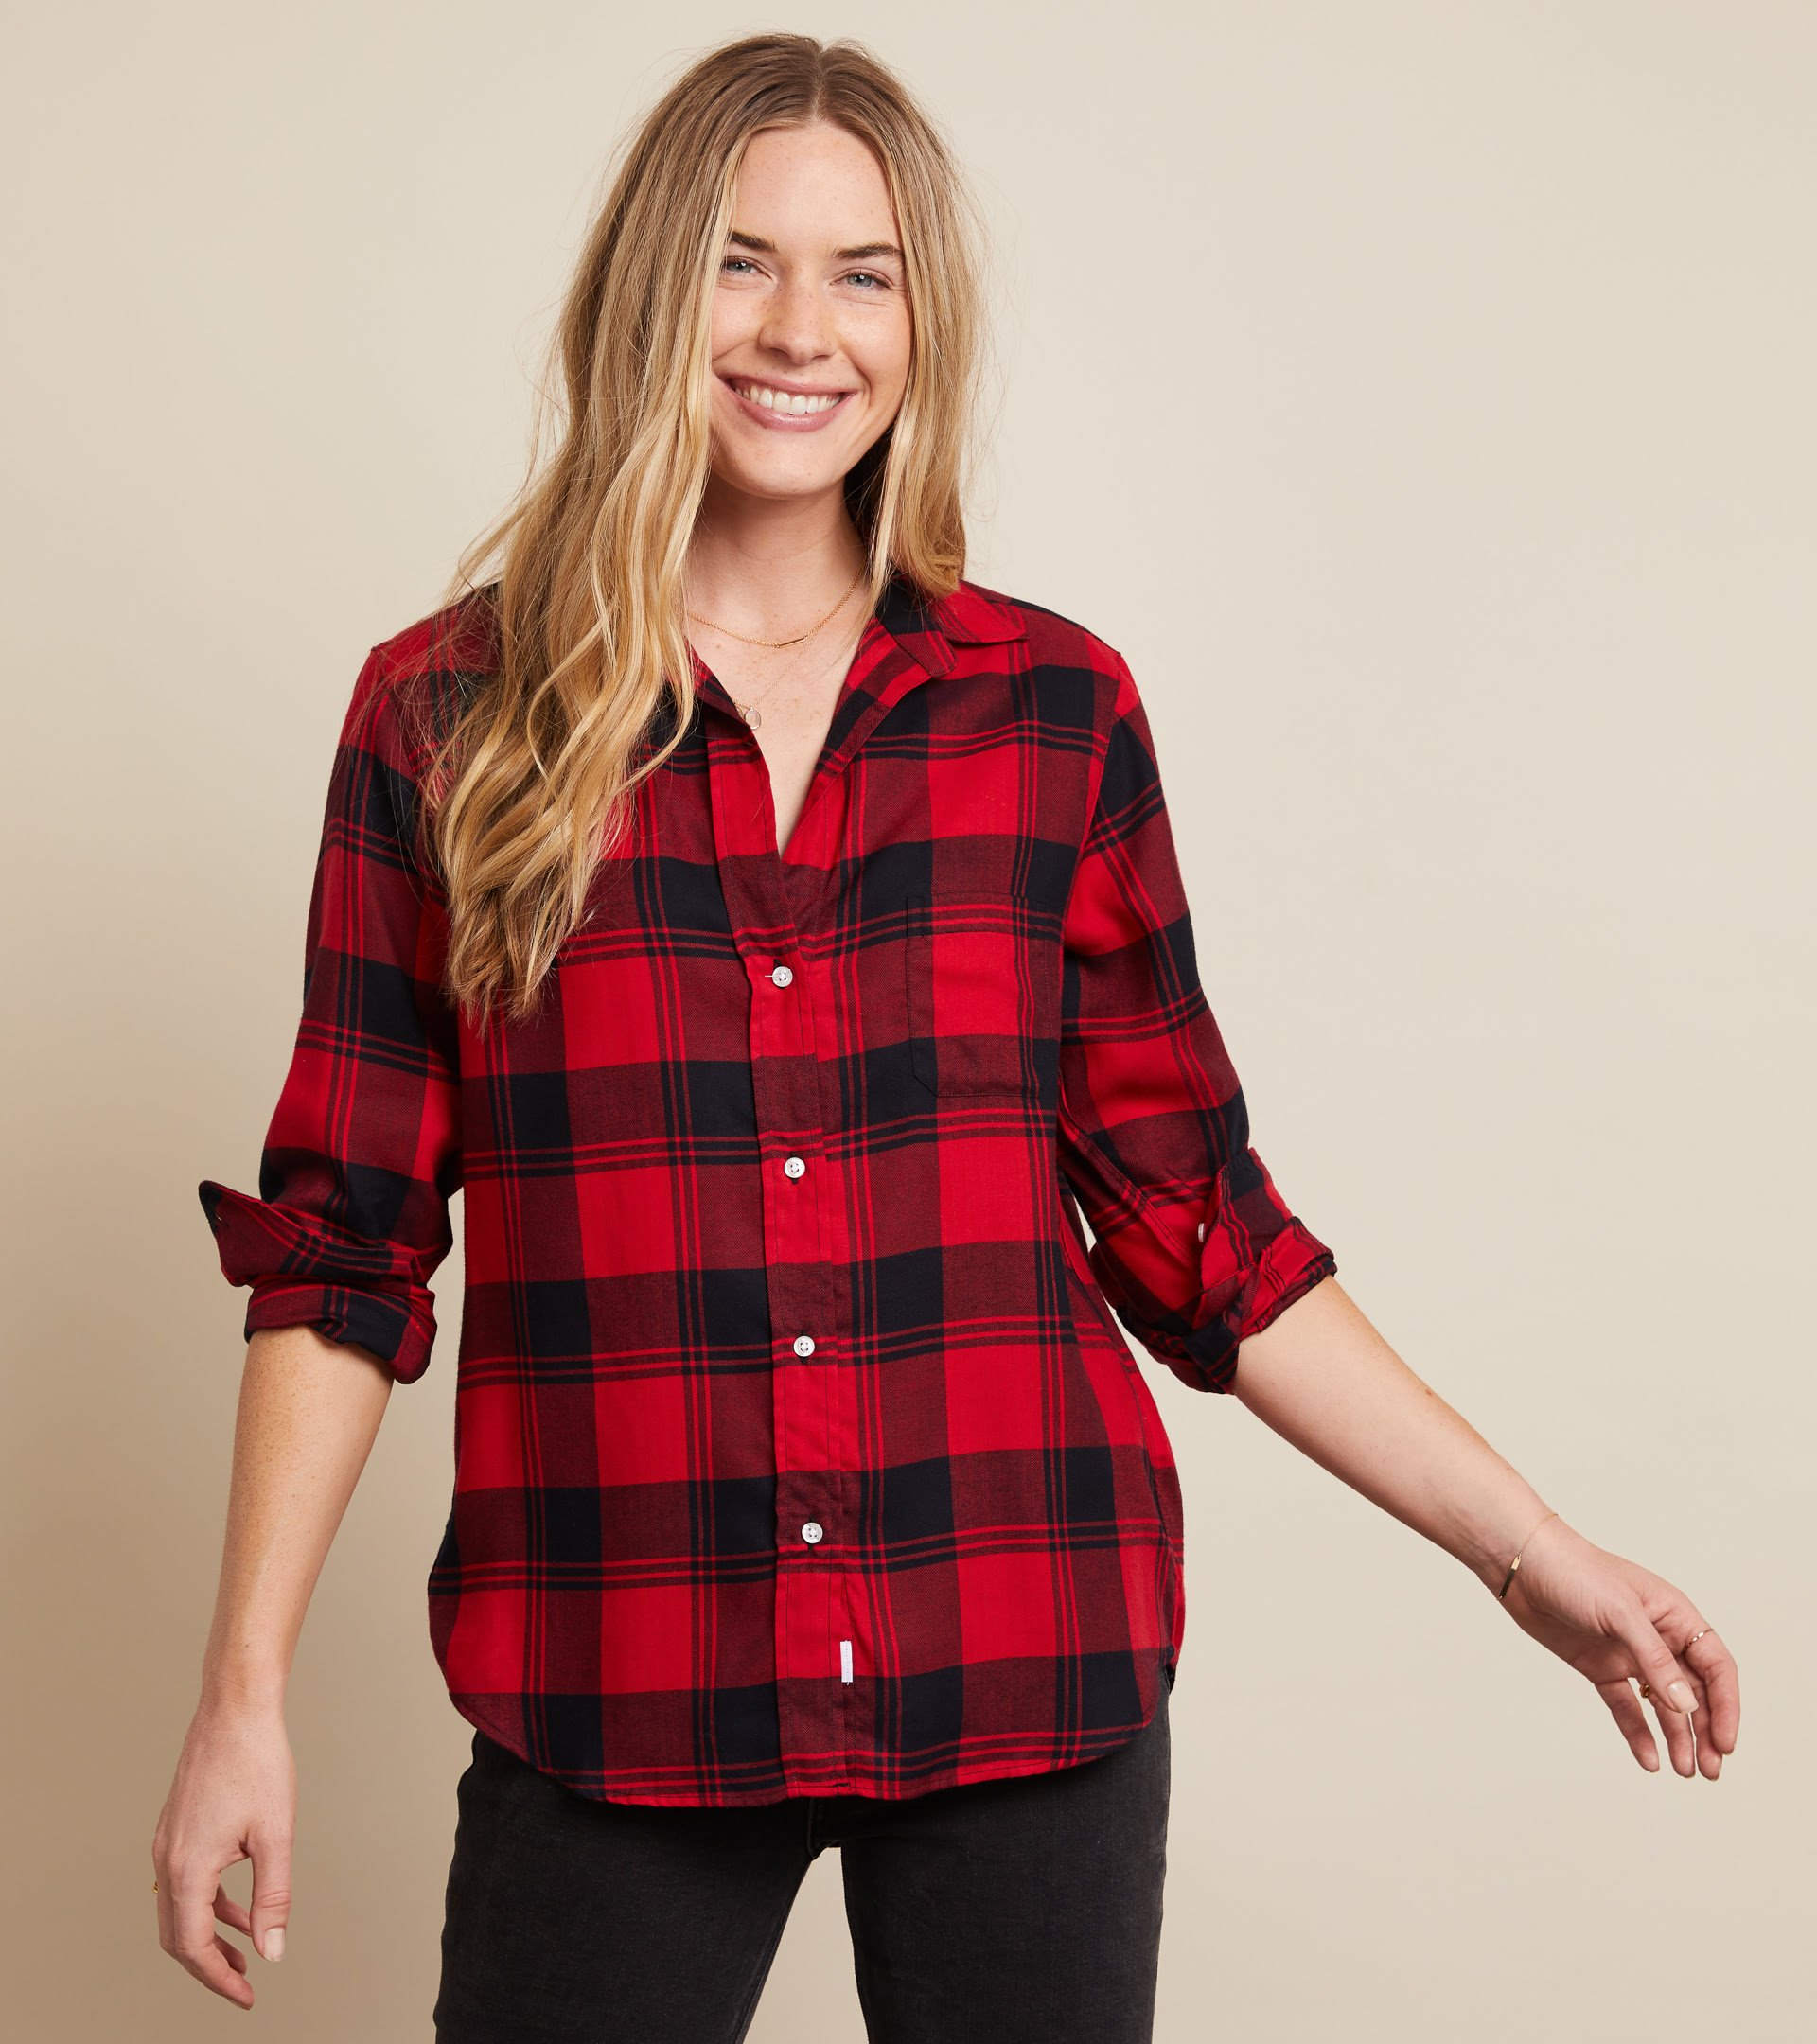 The Hero Button-Up Shirt Red and Black Plaid, Liquid Flannel view 2